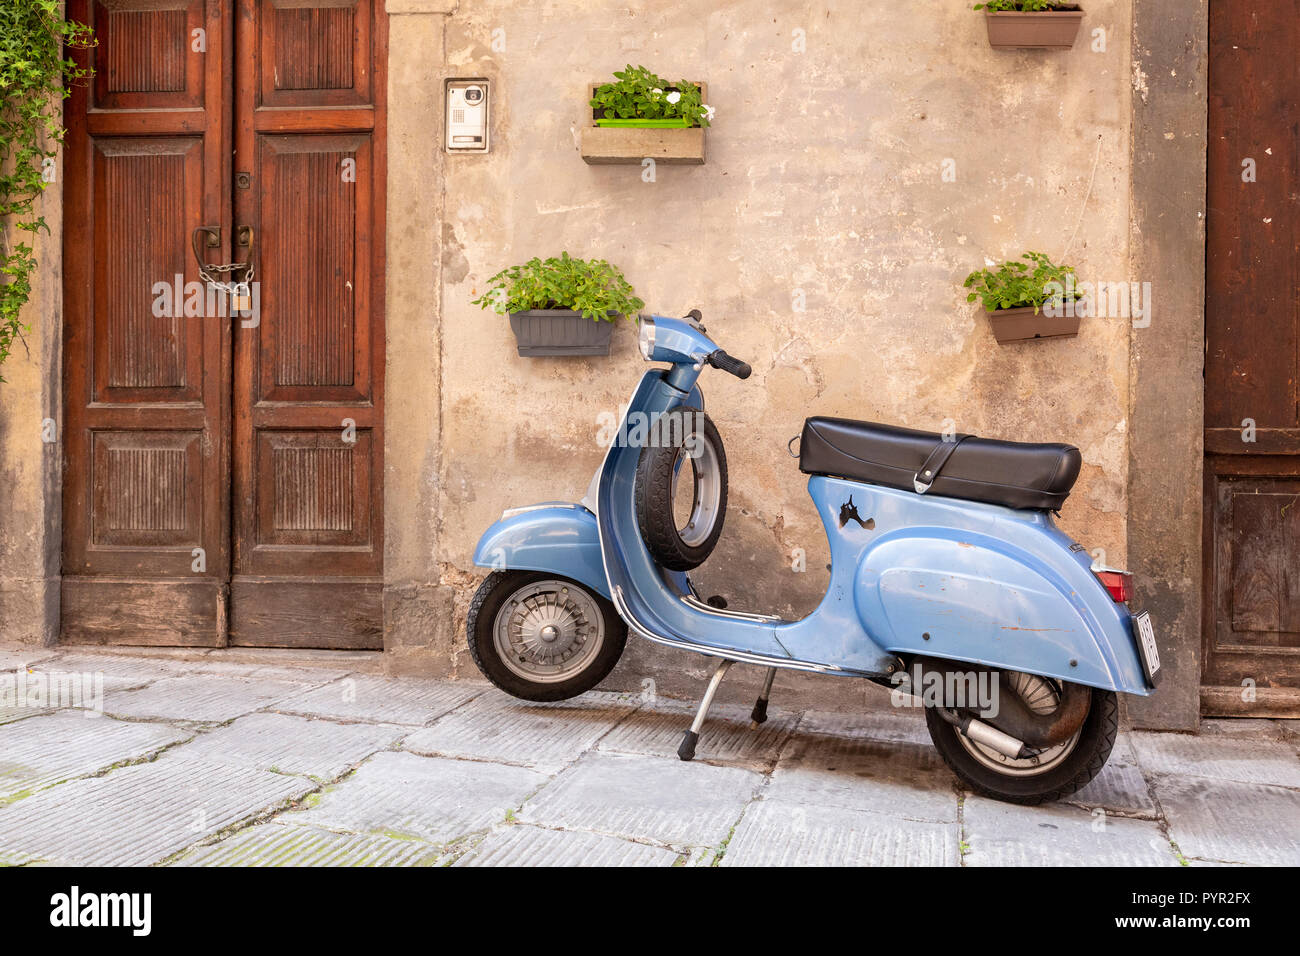 Scooter parked by a wooden door at Lovere on Lake Iseo, italy - Stock Image